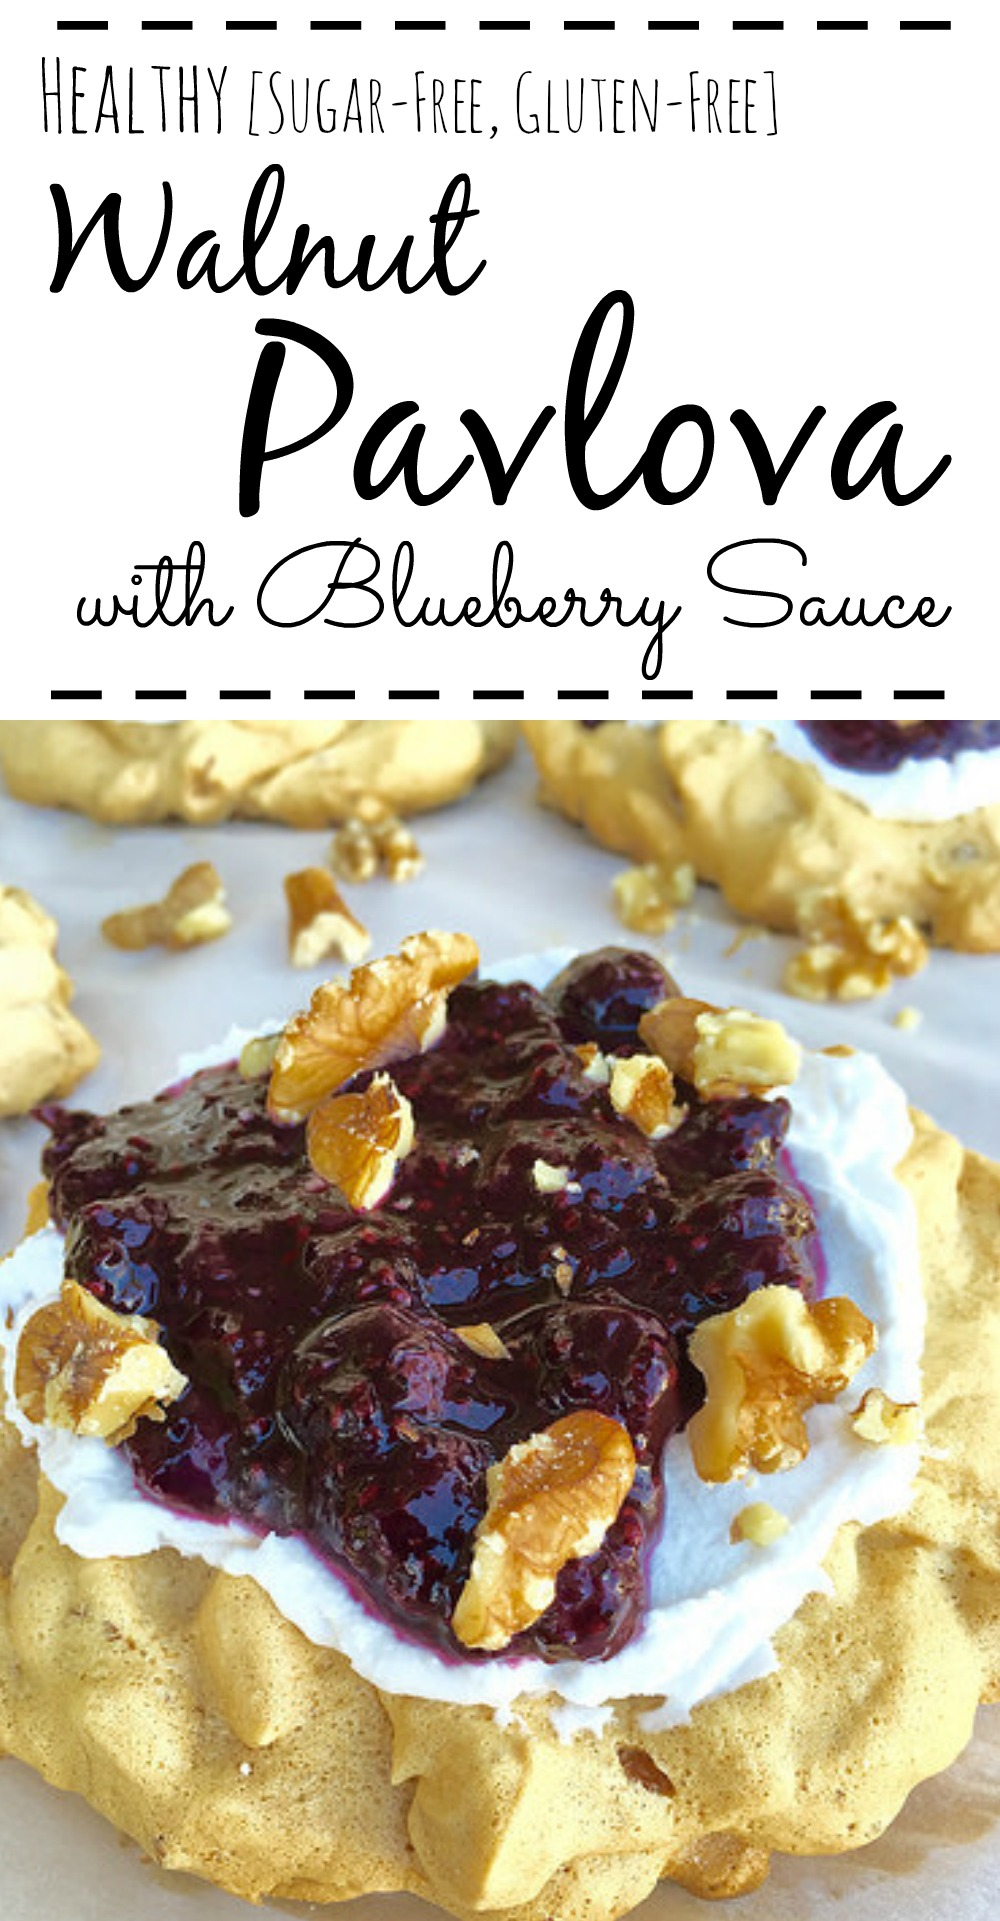 Sugar-Free, Gluten-Free Walnut Pavlova with Blueberry Sauce. With just a few simple ingredients, this dessert looks impressive, but is actually easy!